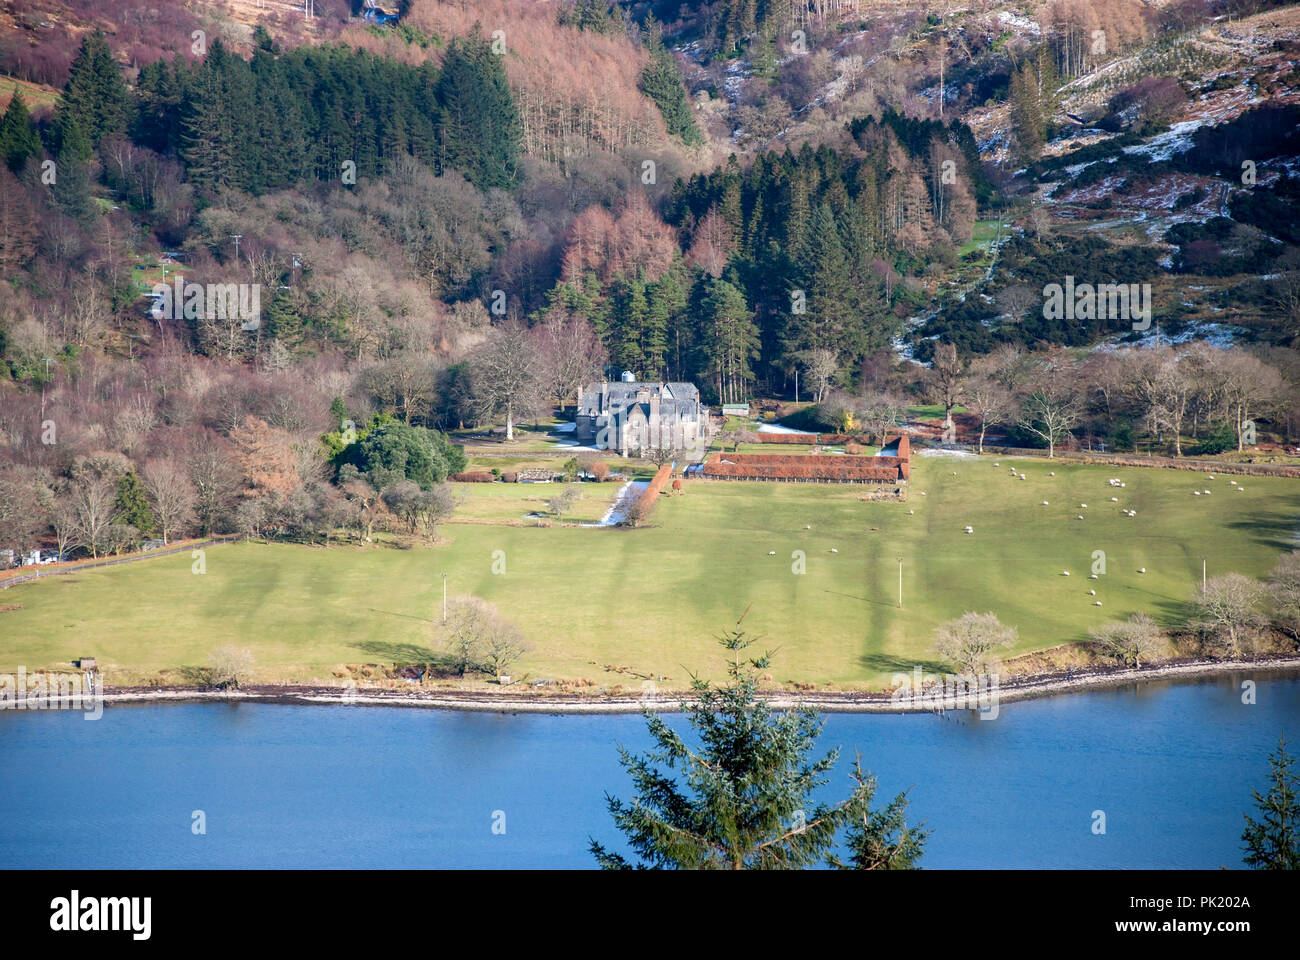 Ardtaraig House Ardtaraig Estate Glen Lean Loch Striven near Dunoon Argyll Scotland U.K. elevated view traditional 17th century scots revival two stor - Stock Image